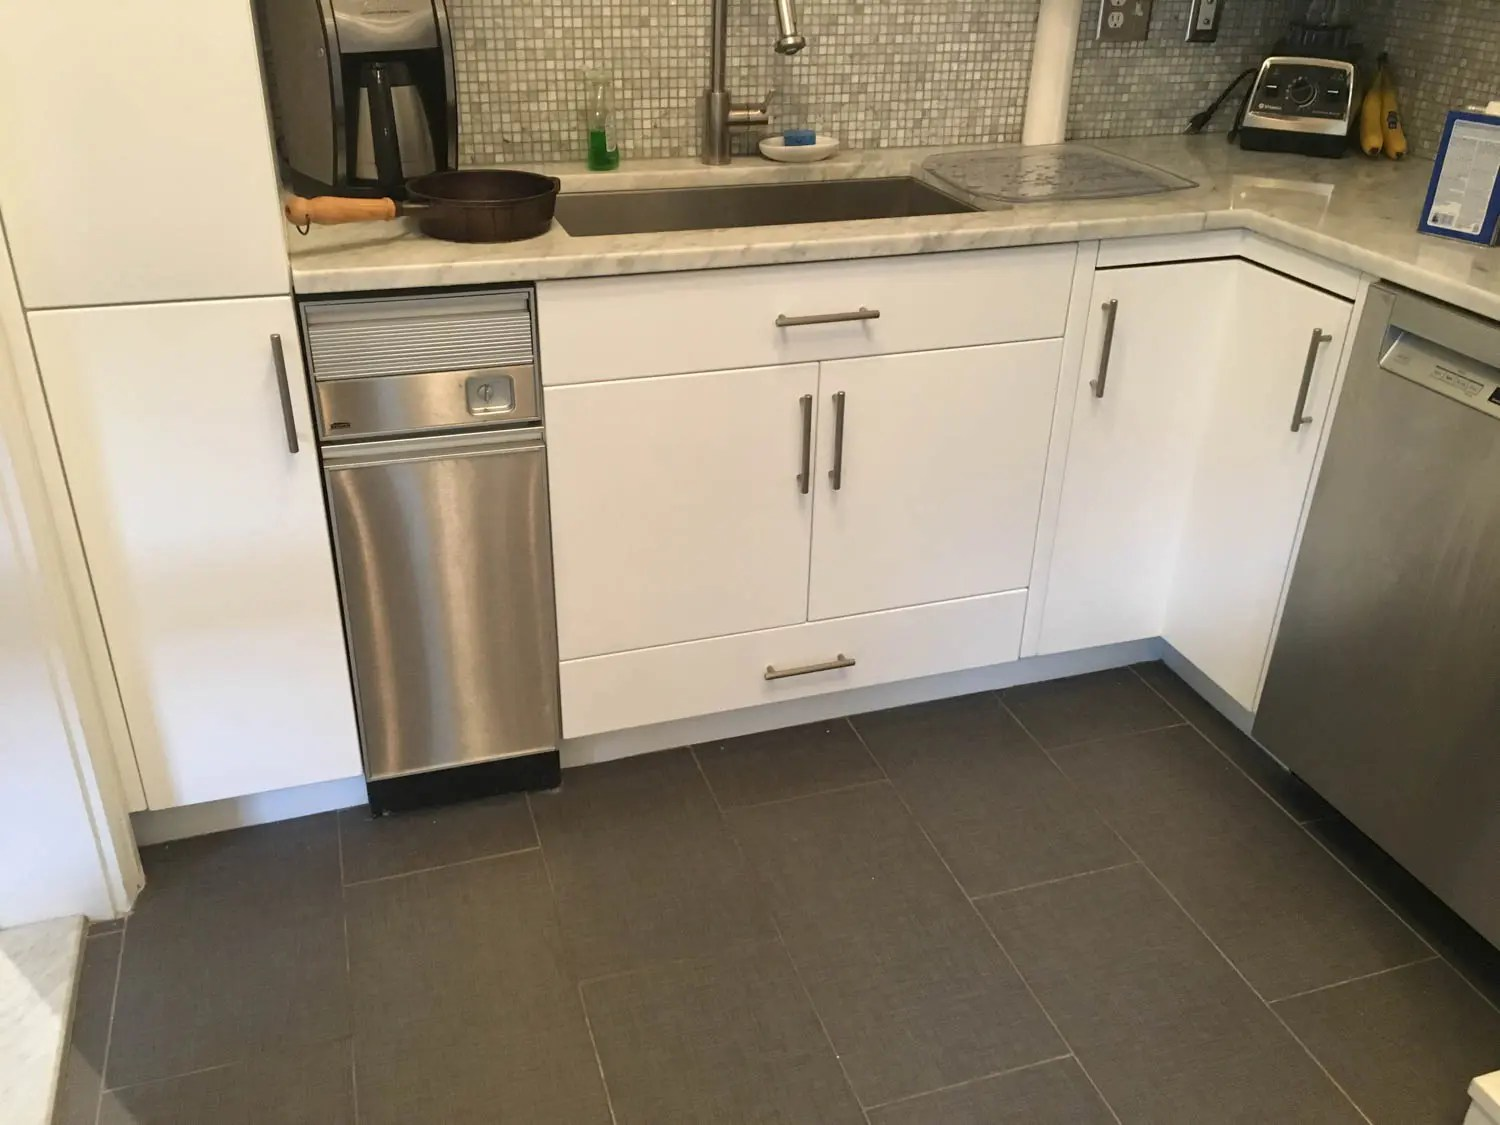 Kitchen Cabinet Refacing Ma Painting Contractors Boston Ma Best Painters Highly